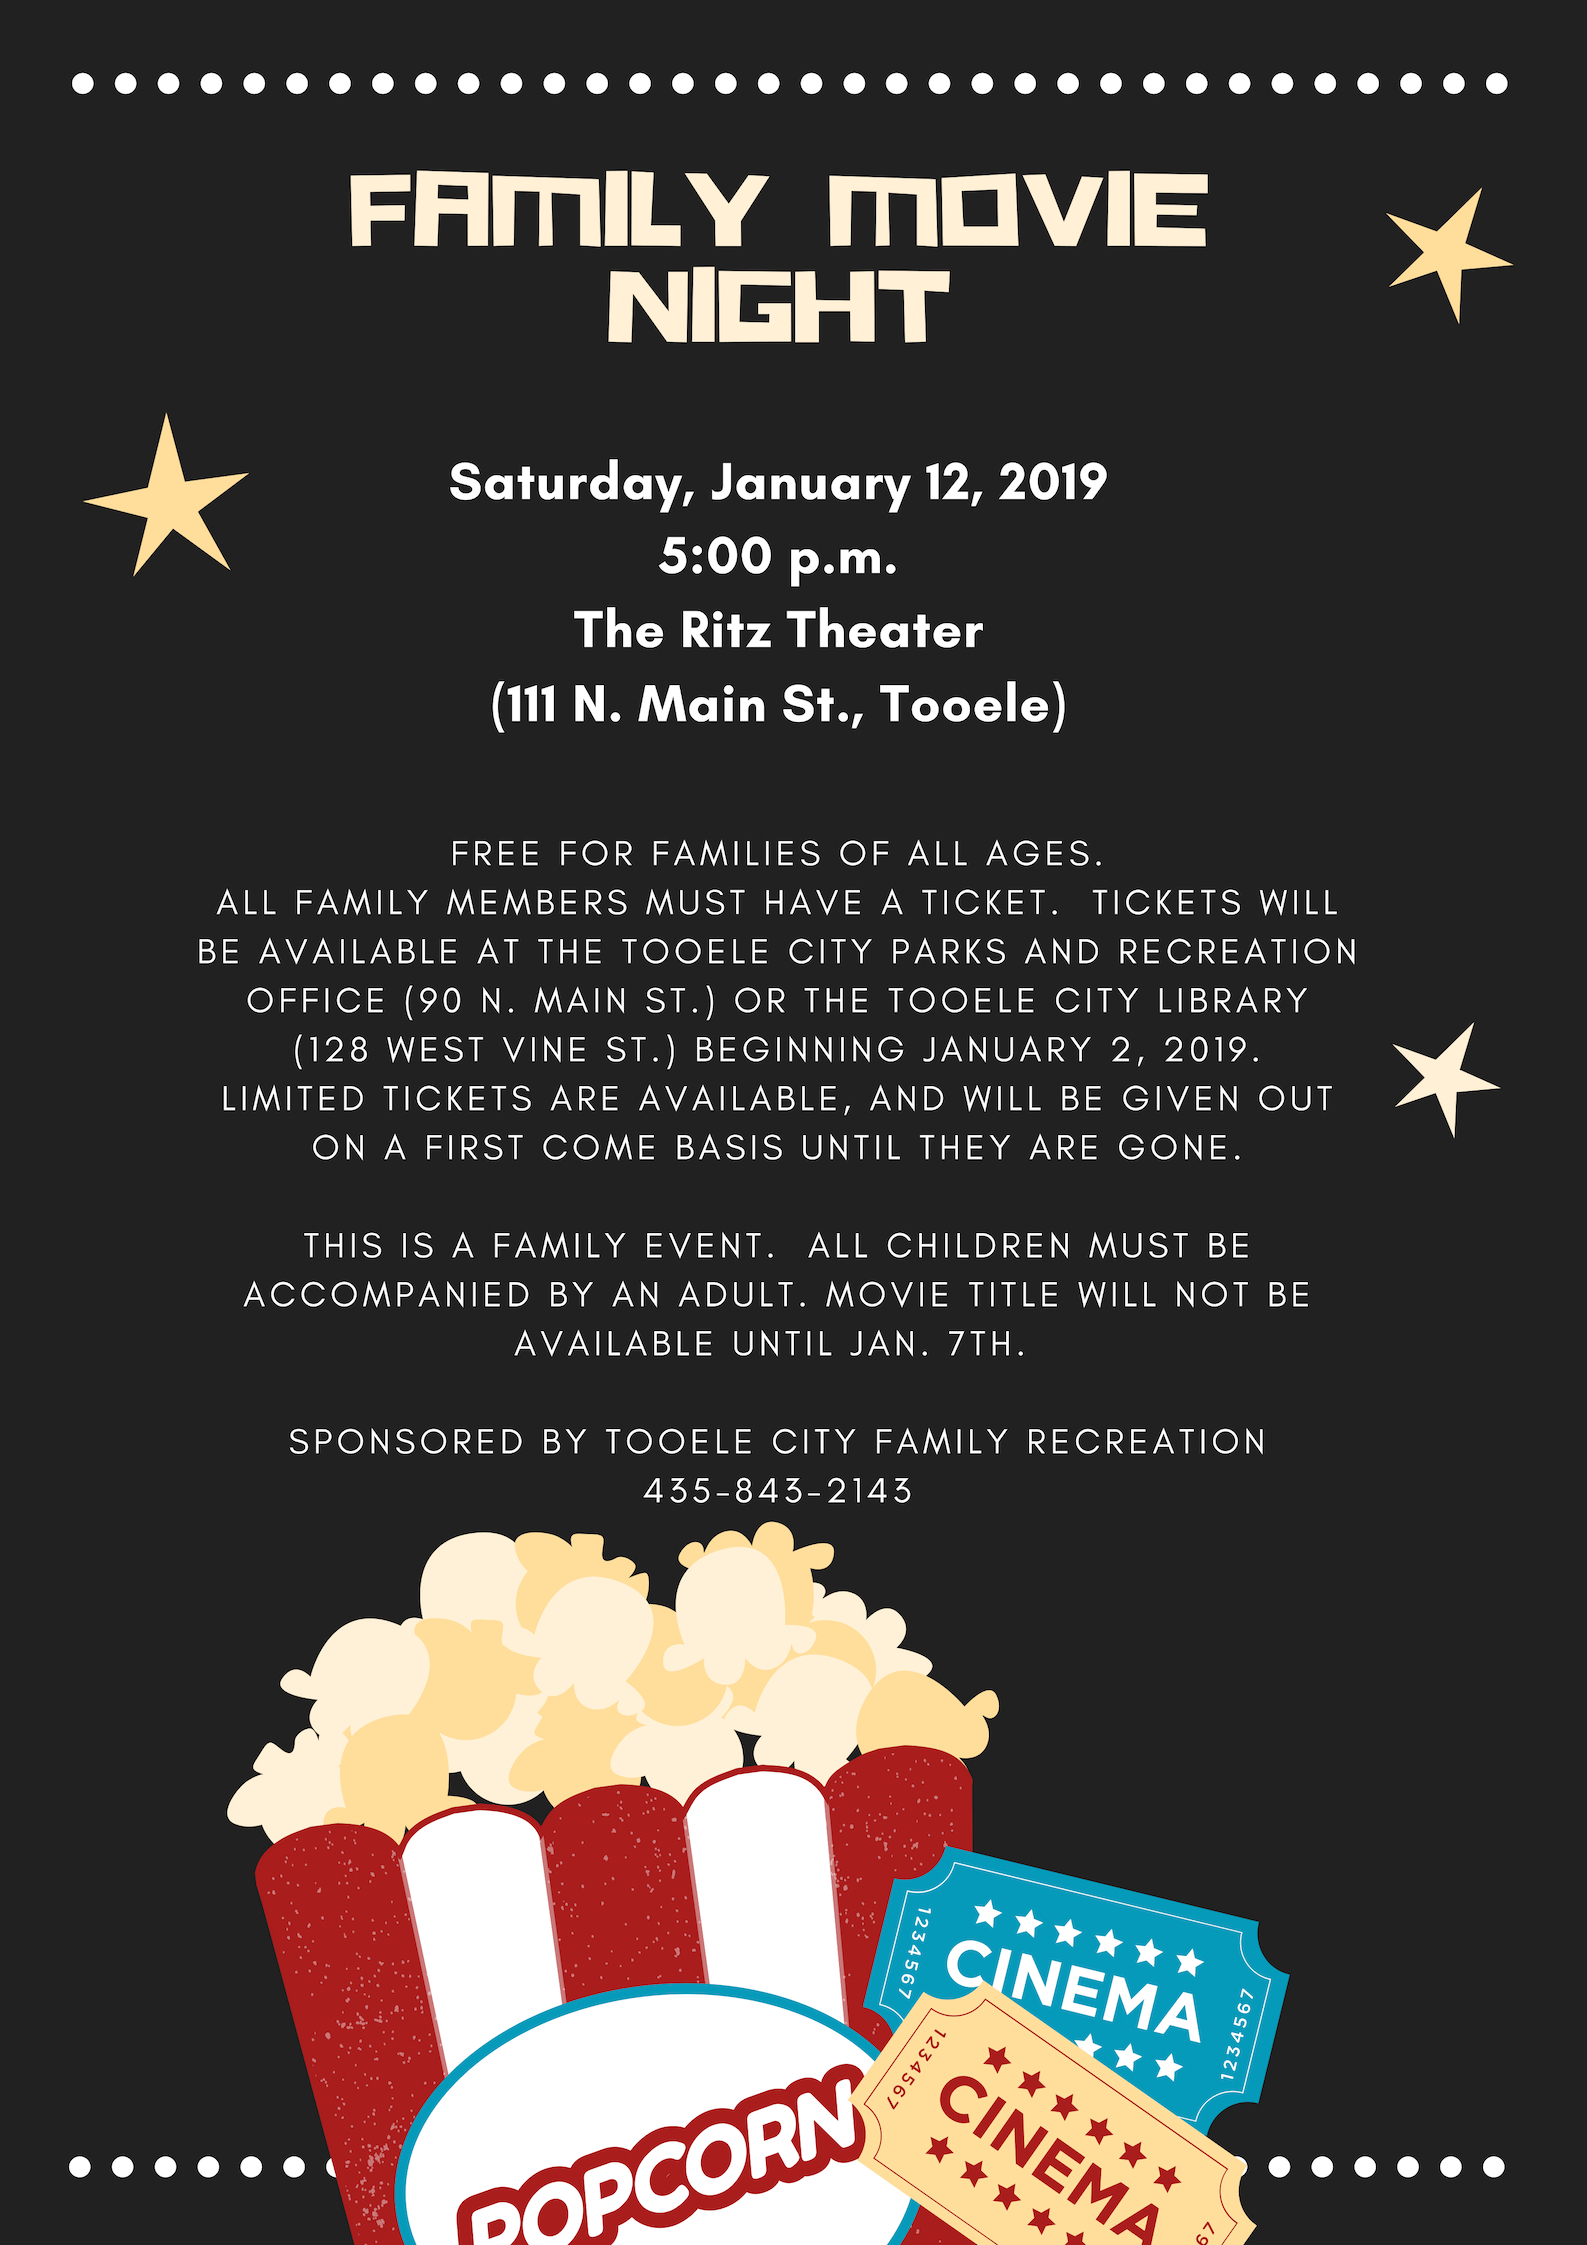 Movie Tickets available for FREE Family Movie Night